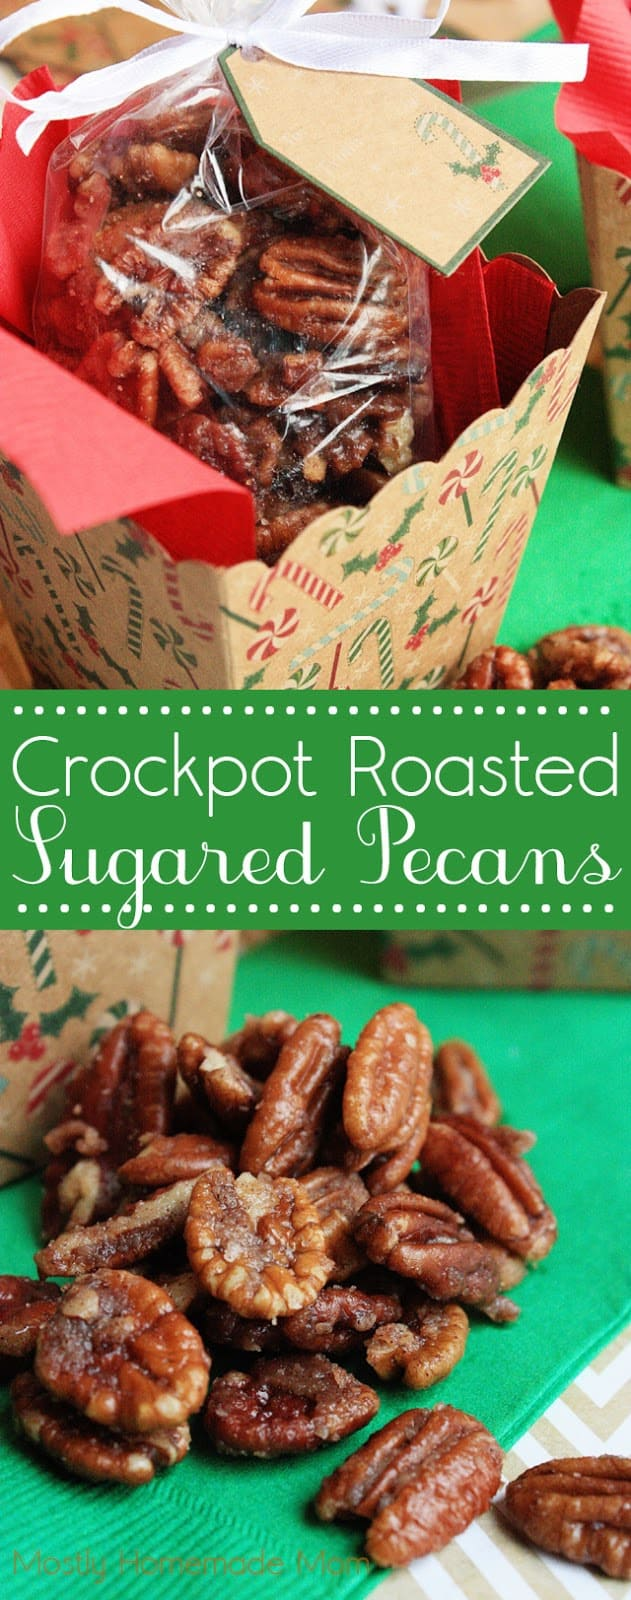 Slow Cooker Roasted Sugared Pecans Slow Cooker Roasted Sugared Pecans new picture